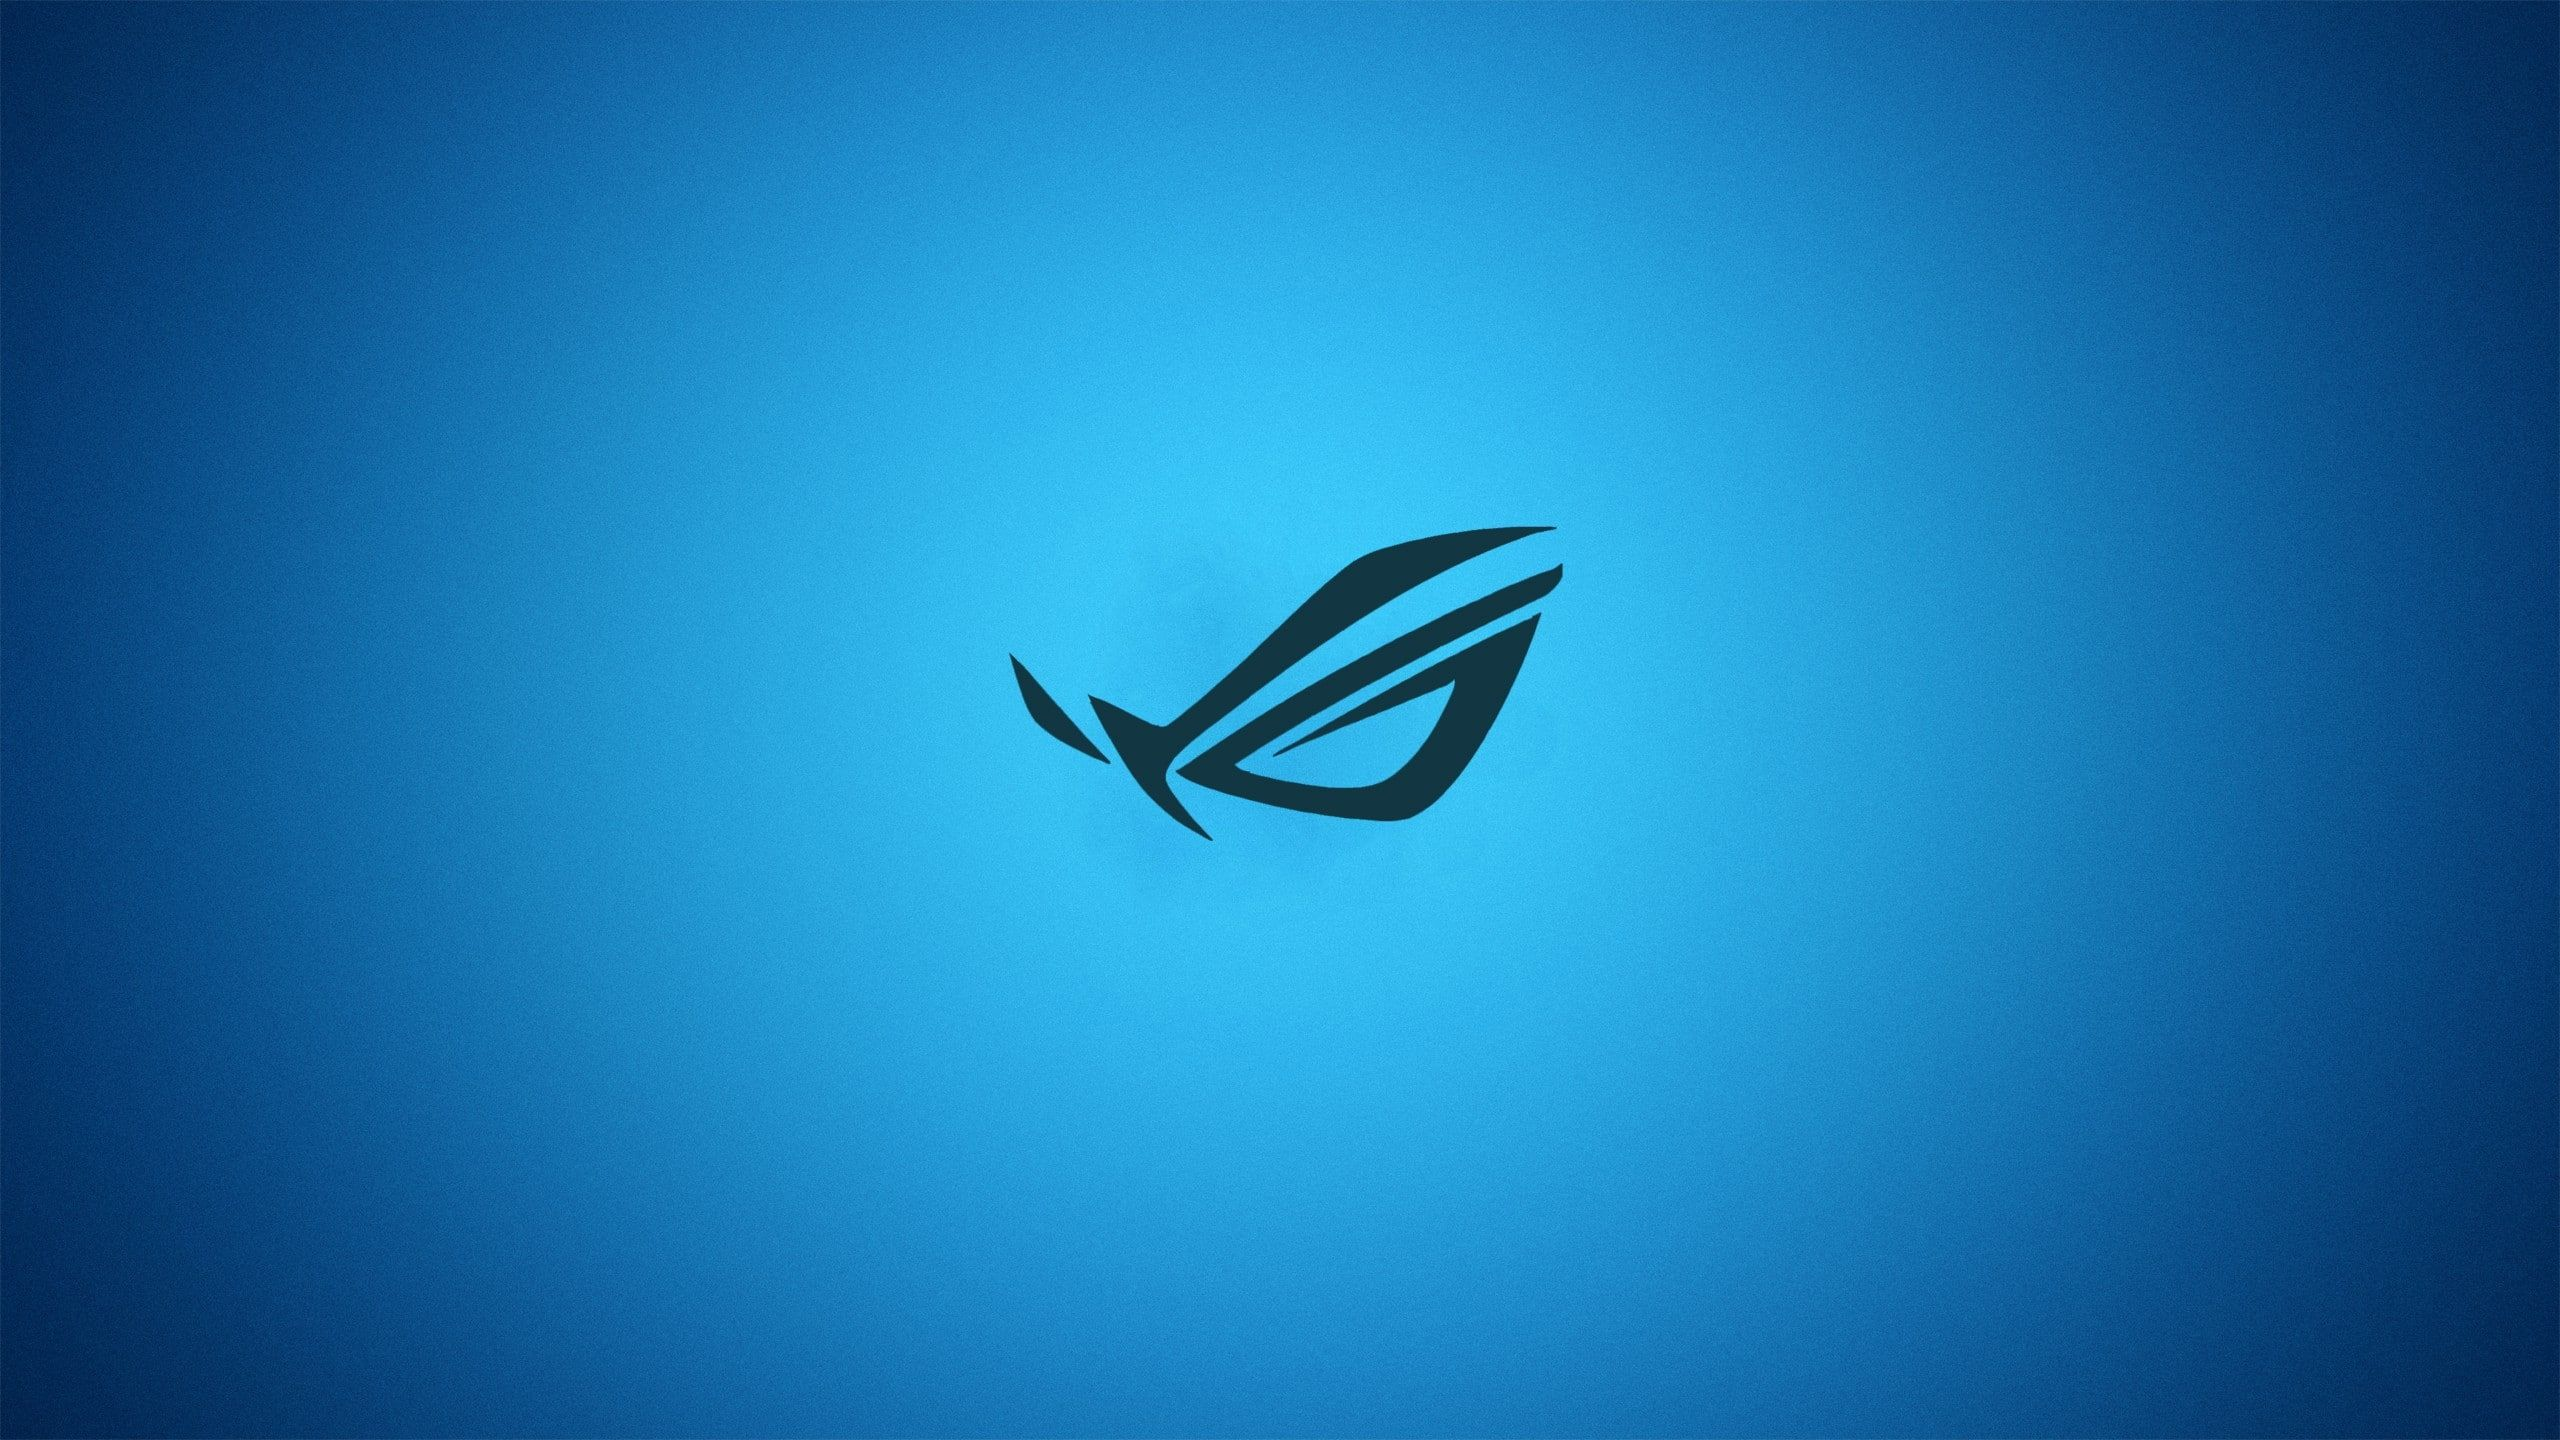 Blue Minimalistic Asus Gradient Logos Republic Of Gamers 2560x1440 Technology Asus Hd Art Blue Minimalist Gaming Wallpapers Asus High Resolution Wallpapers